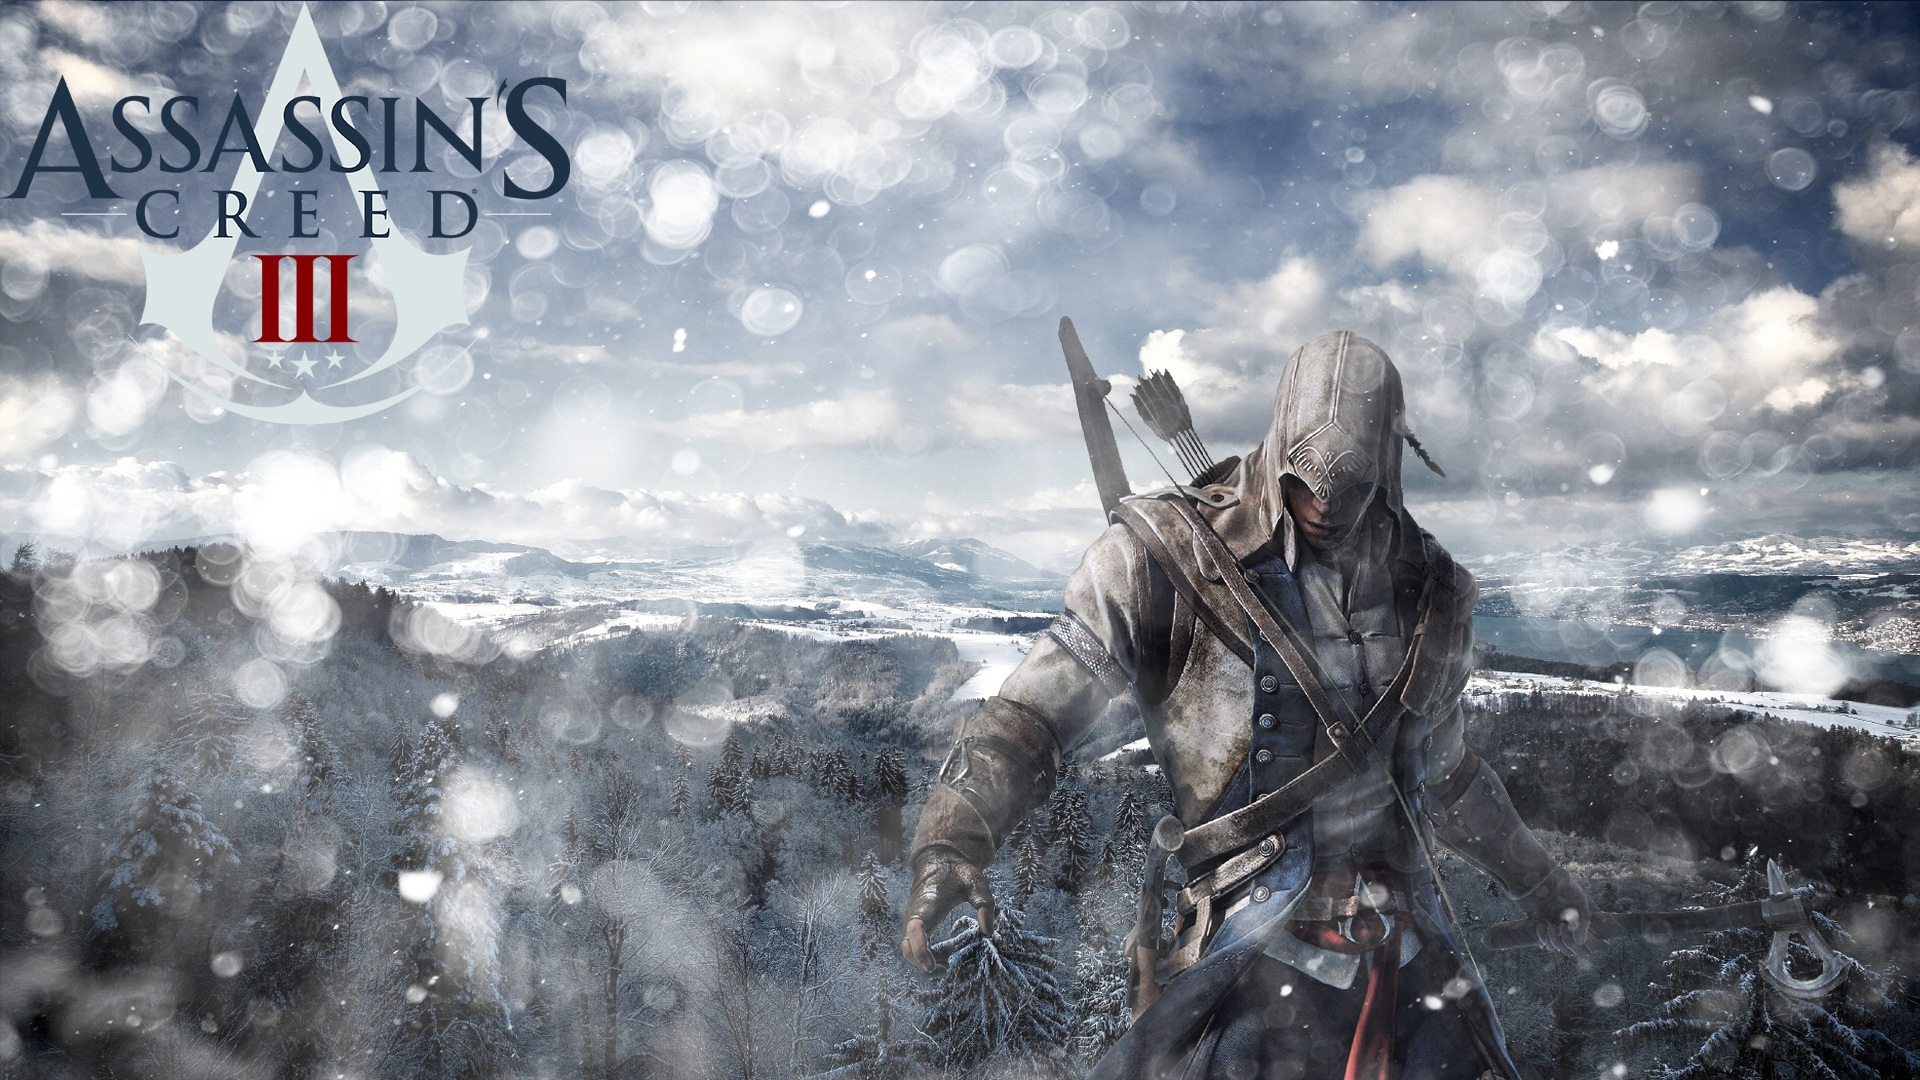 Wallpaper Assassins Creed 3 HD 2012 1920x1080 Full Picture Image